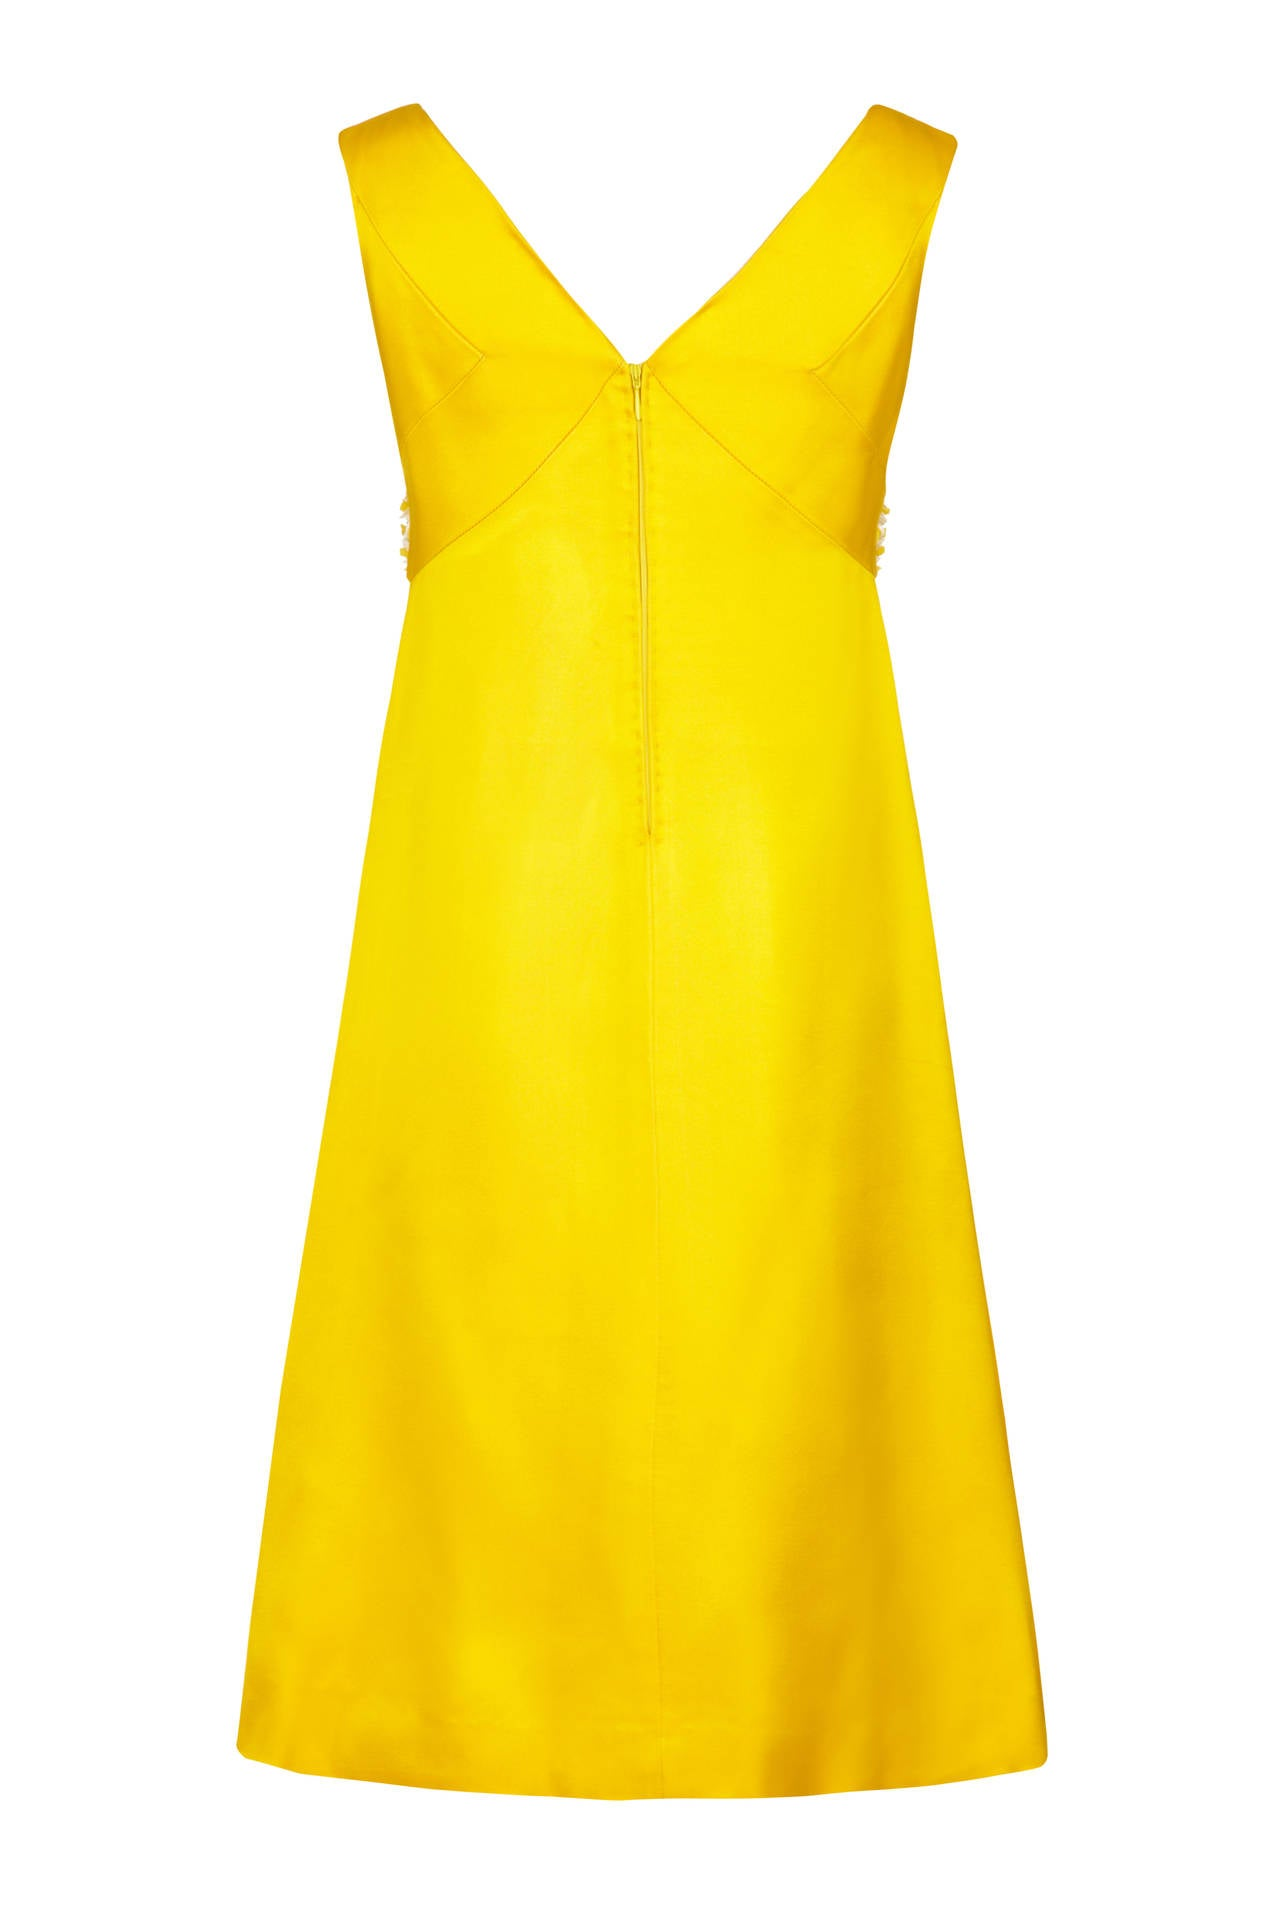 Stunning late 1960s French Couture yellow silk A line mini dress.  This piece features unusual white and yellow floral 3D beading and rhinestones around the V neckline and pretty panelling around the bust.  Unfitted around the waist it fastens at